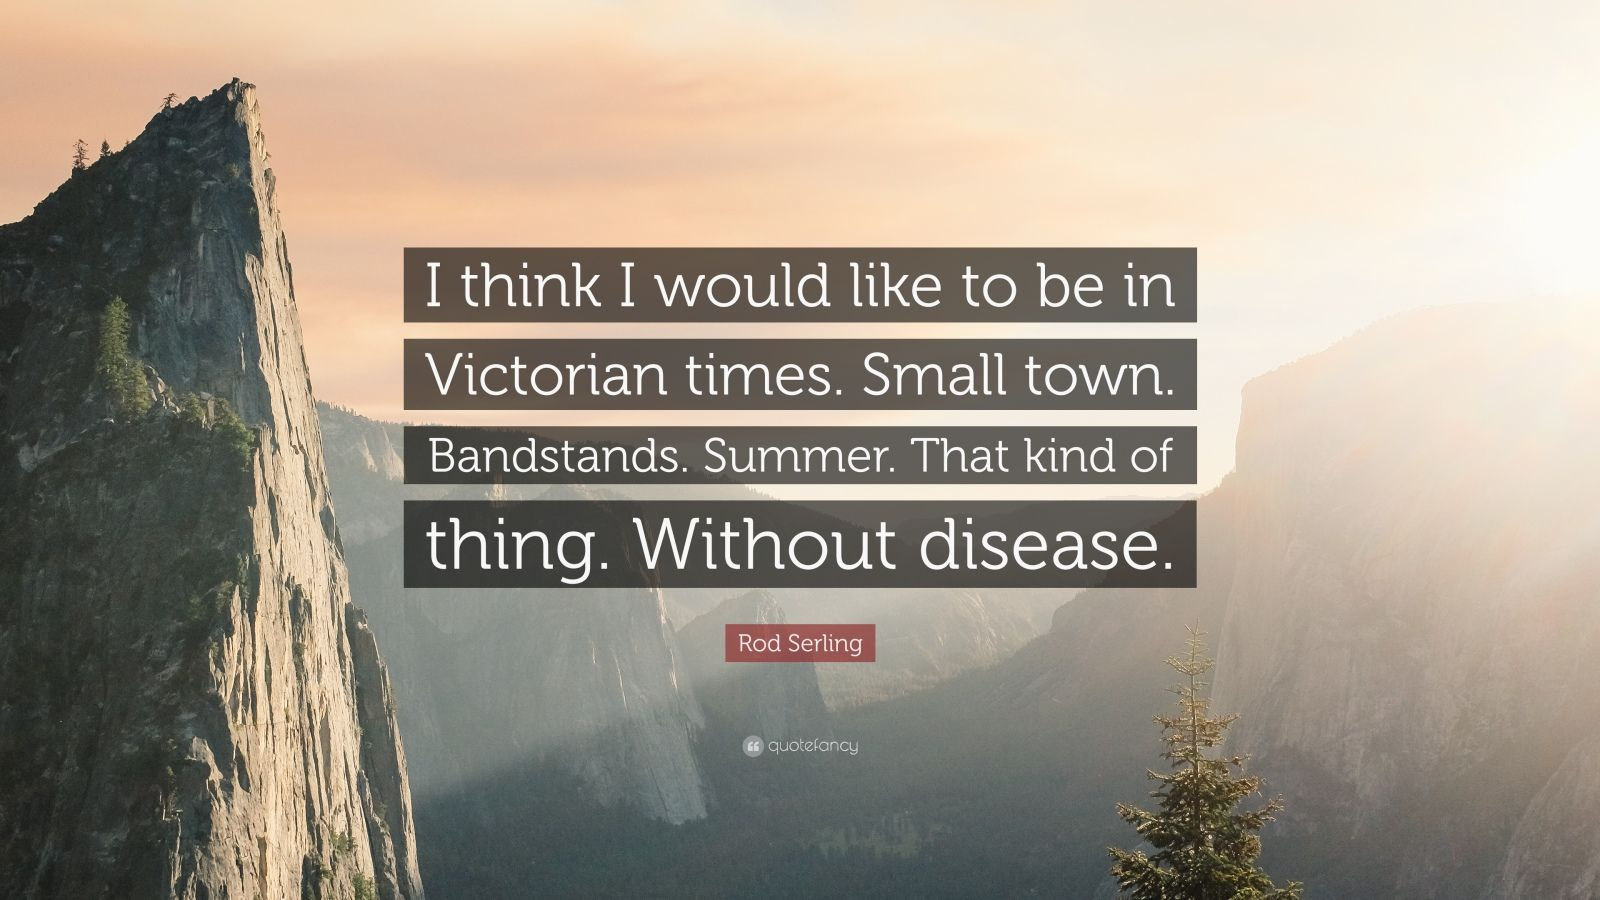 """Rod Serling Quote: """"I think I would like to be in Victorian times. Small town. Bandstands. Summer. That kind of thing. Without disease."""""""